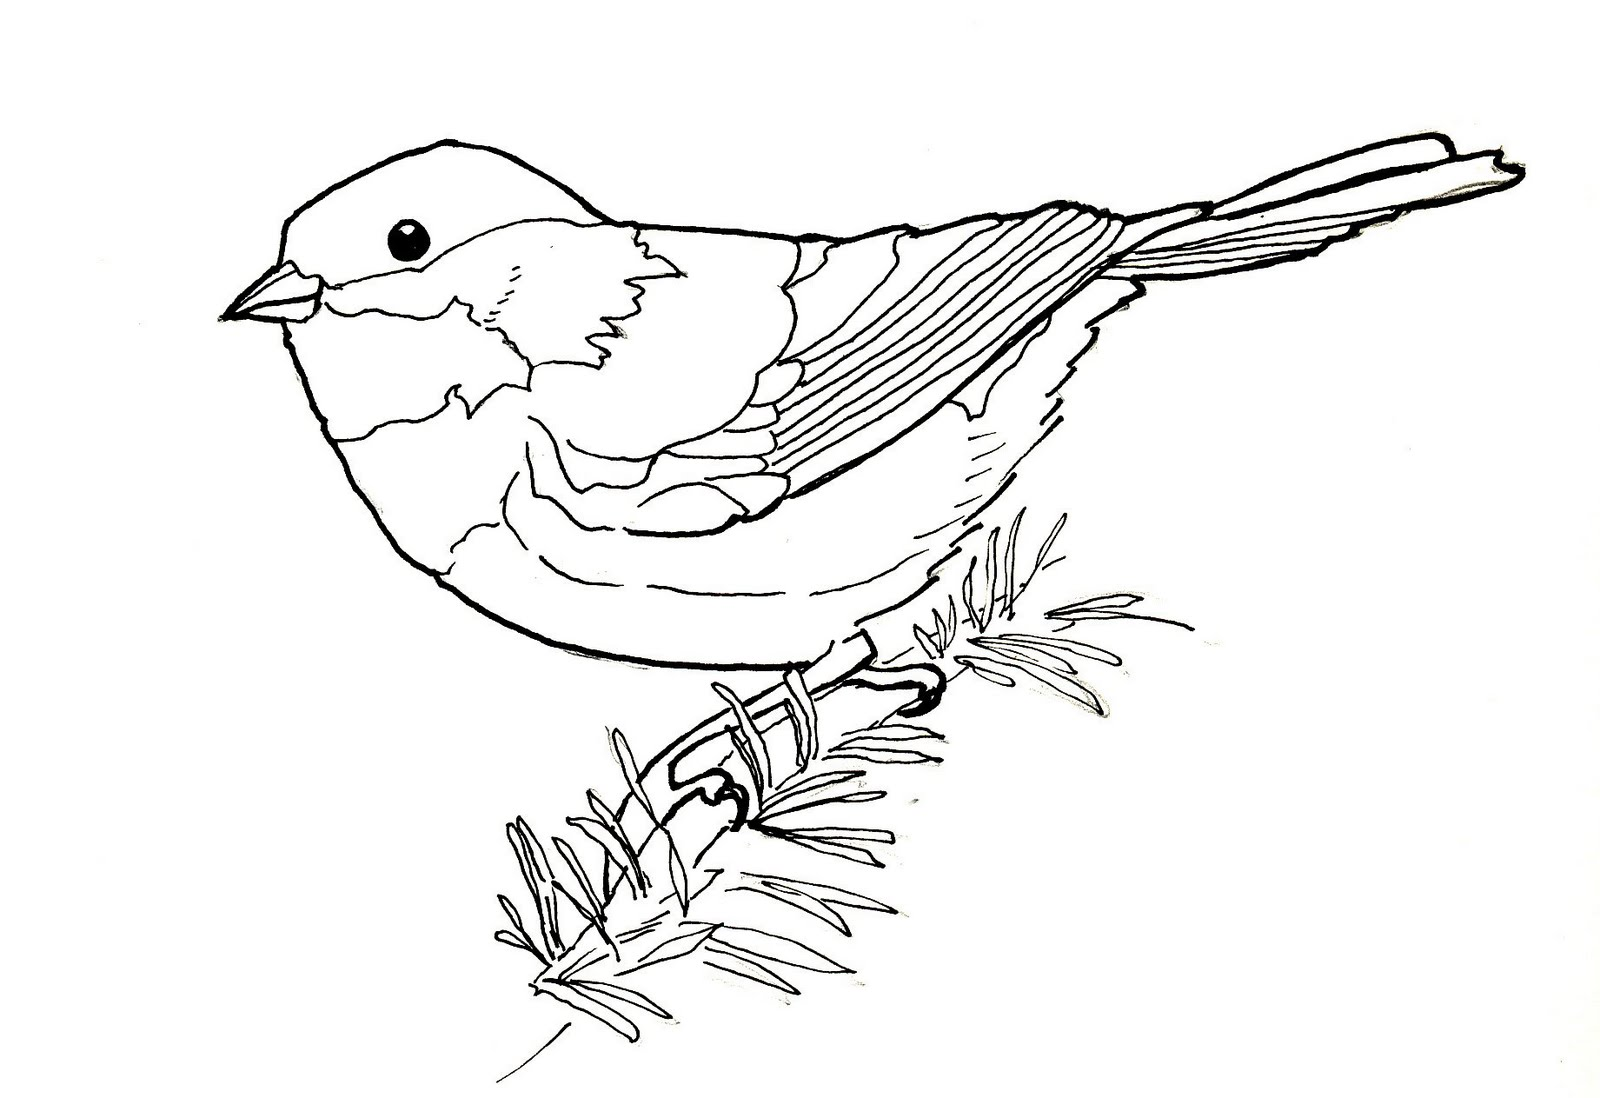 Quail Line Art : Bird line drawing at getdrawings free for personal